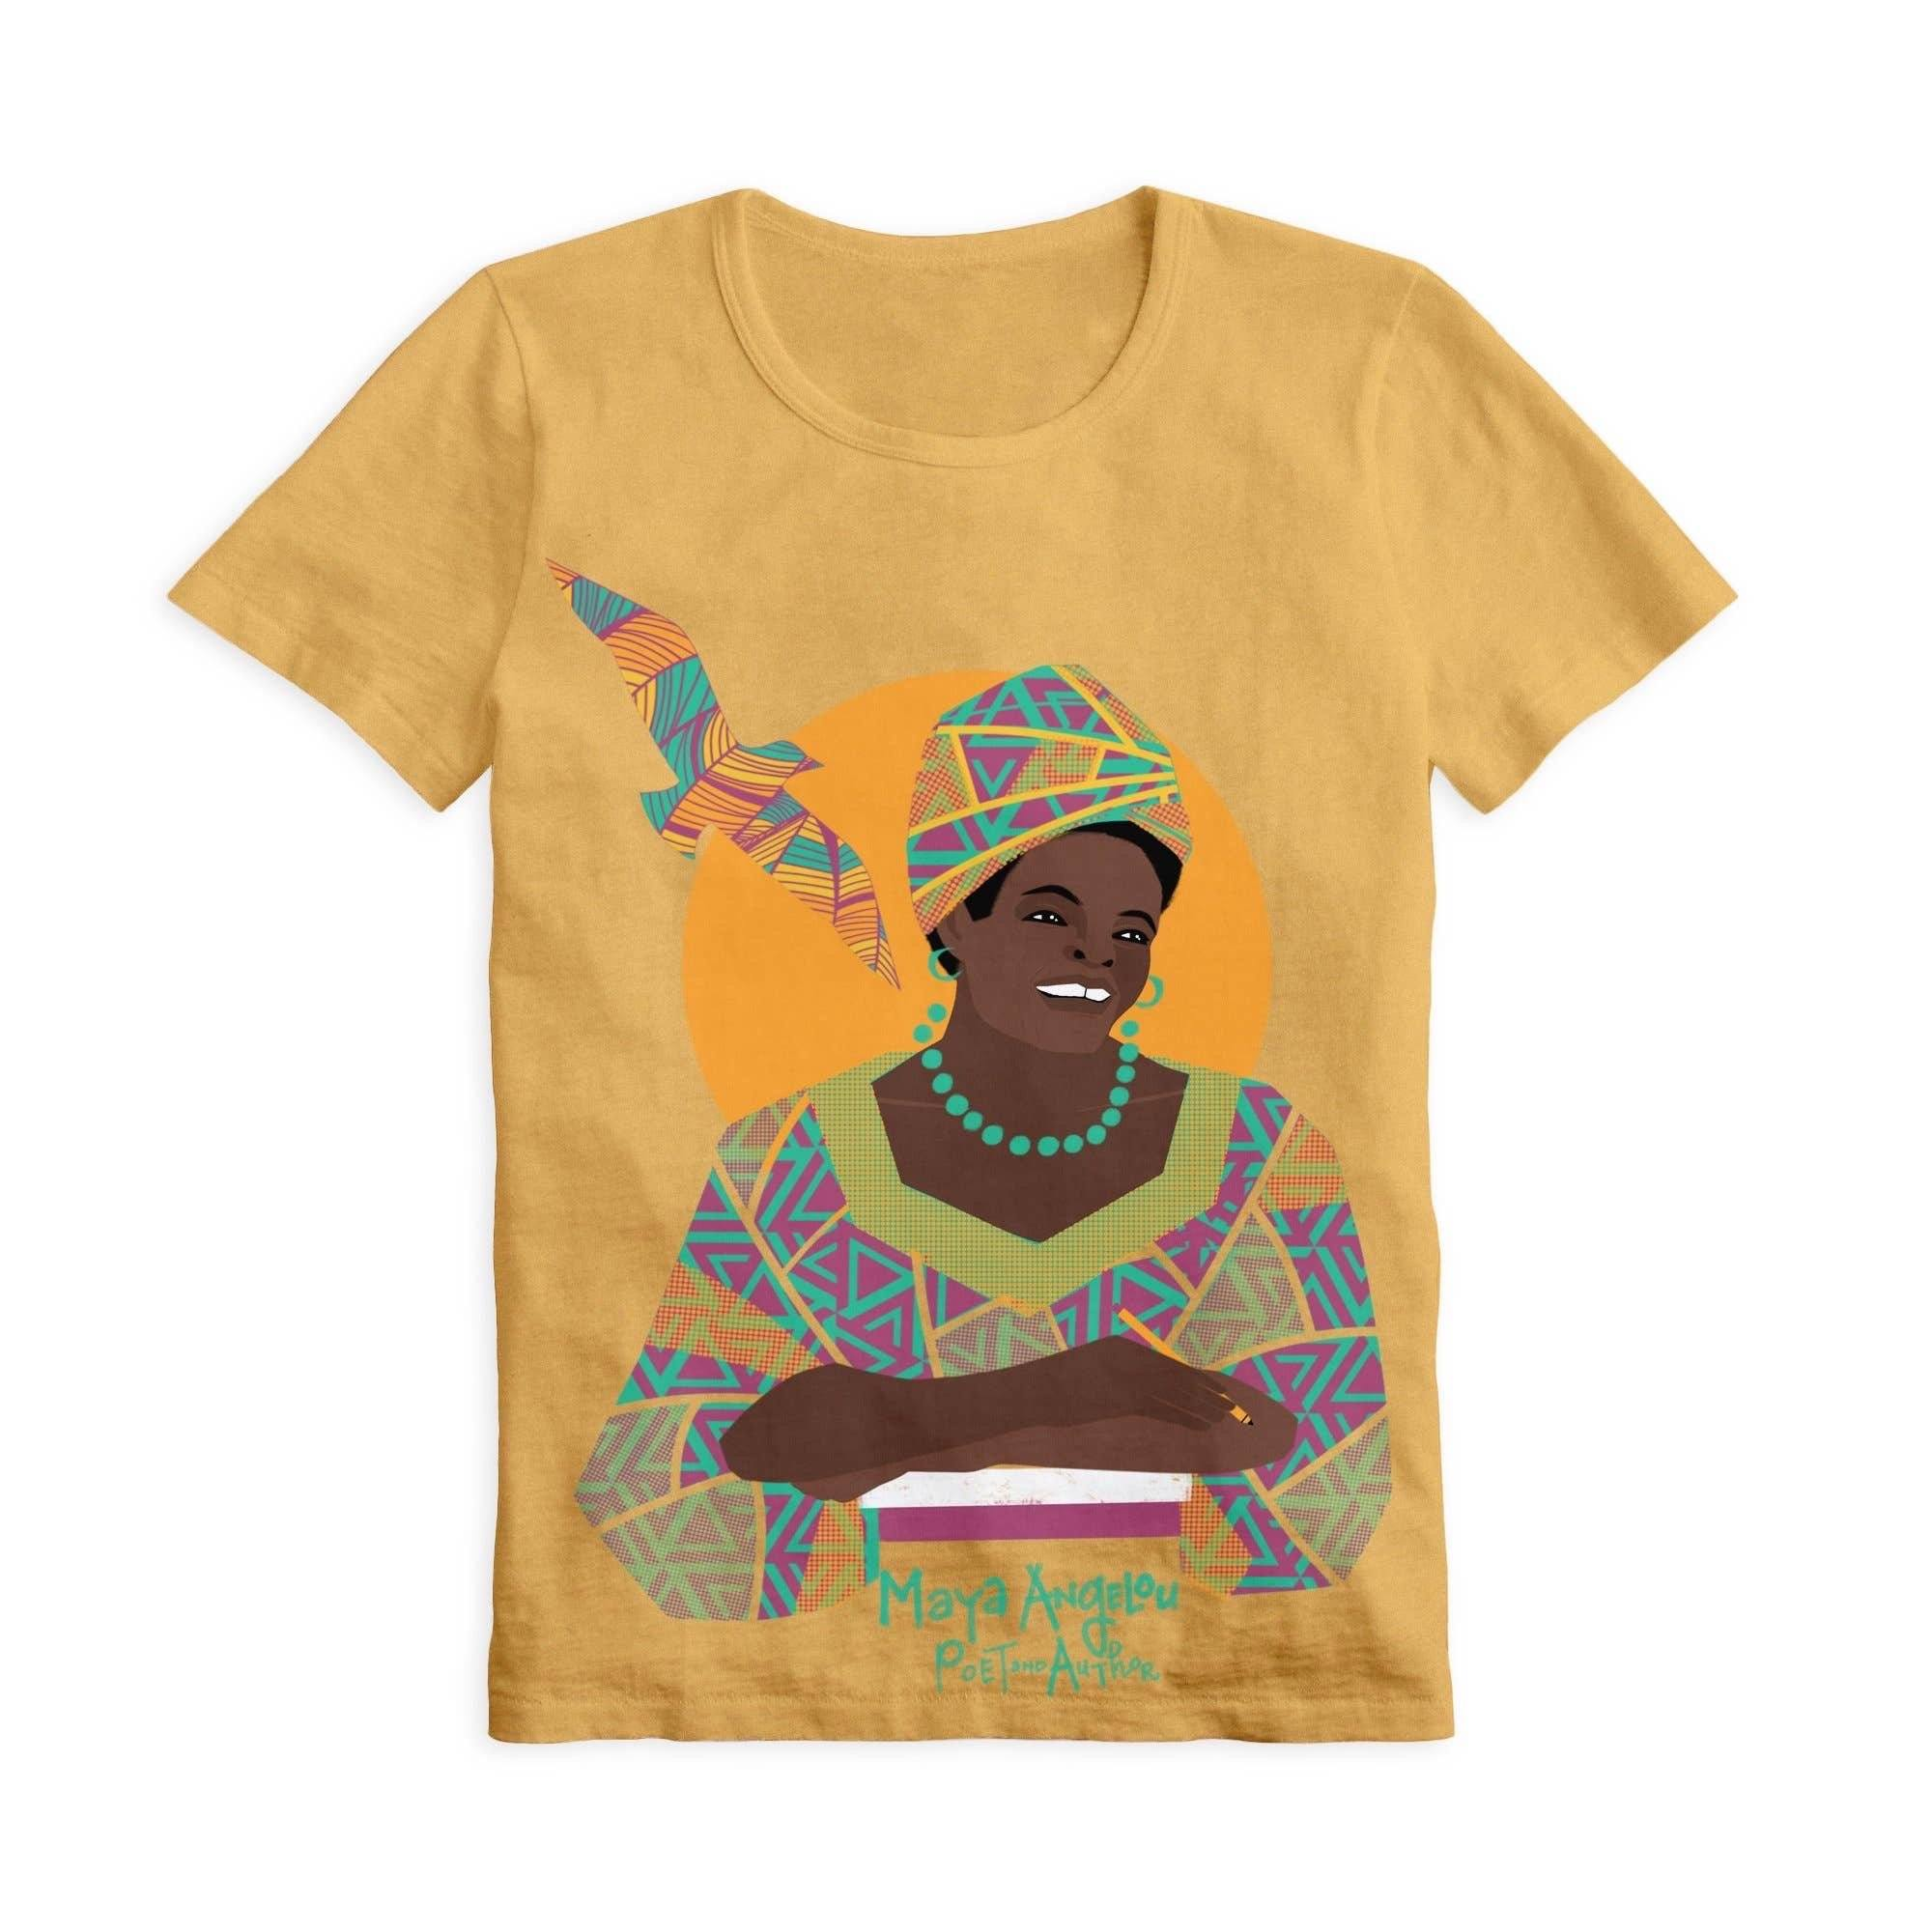 Piccolina Adult Maya Angelou Short Sleeve Trailblazer Tee Show Your Africa